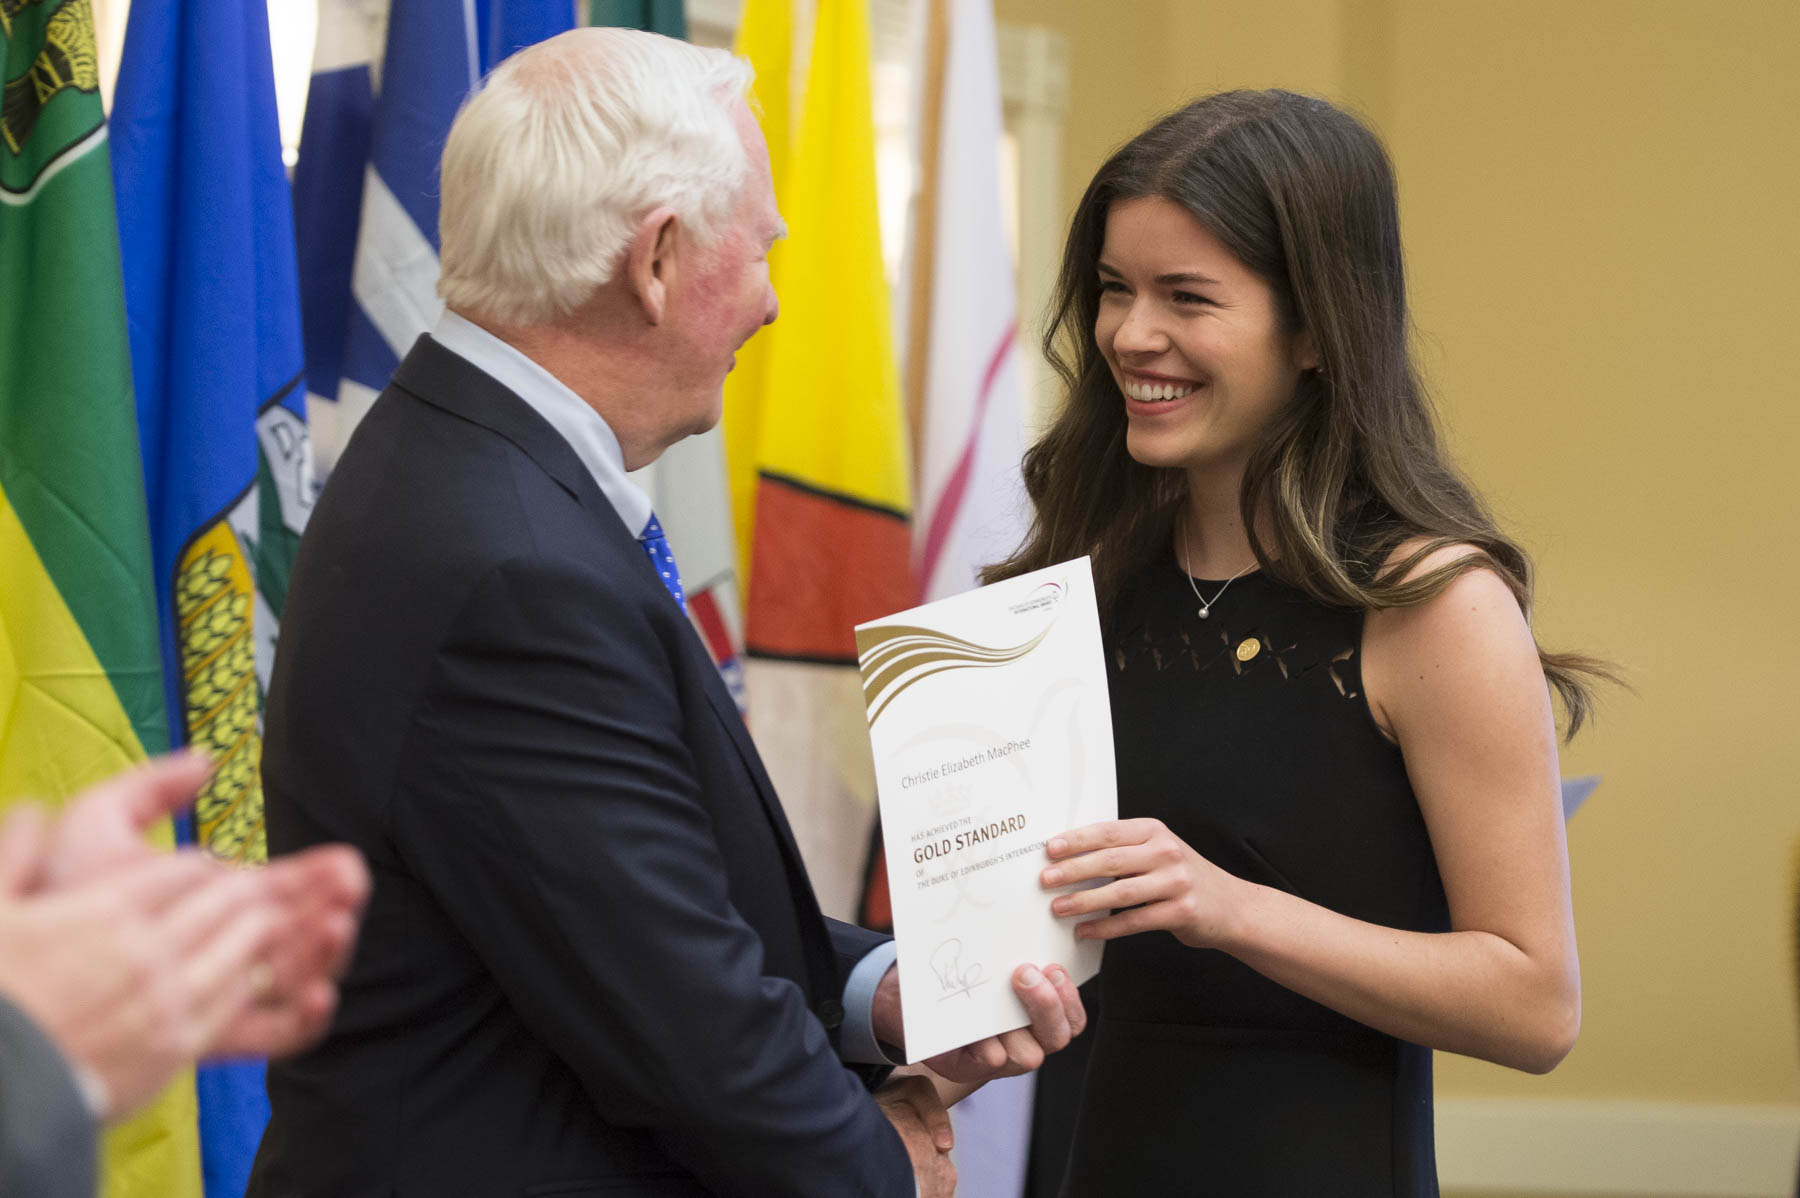 The Duke of Edinburgh's International Award is a global program whose goal is to challenge, encourage and recognize young people between the ages of 14 and 24. This unique program is designed to empower youth to utilize their passions to help them believe in their own potential.